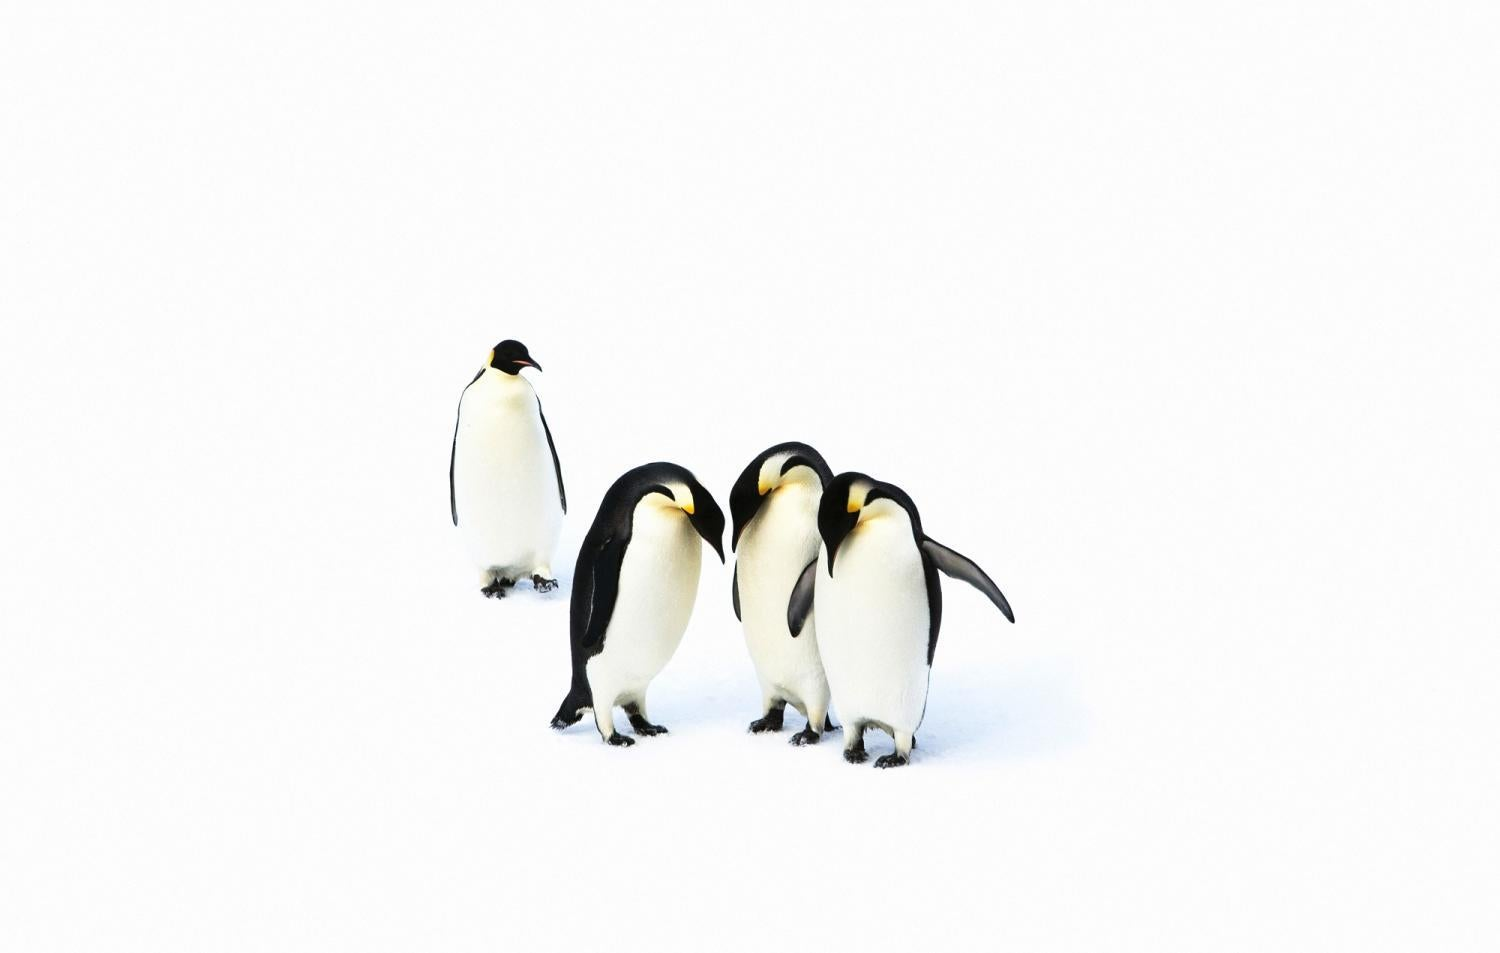 penguins huddling on ice